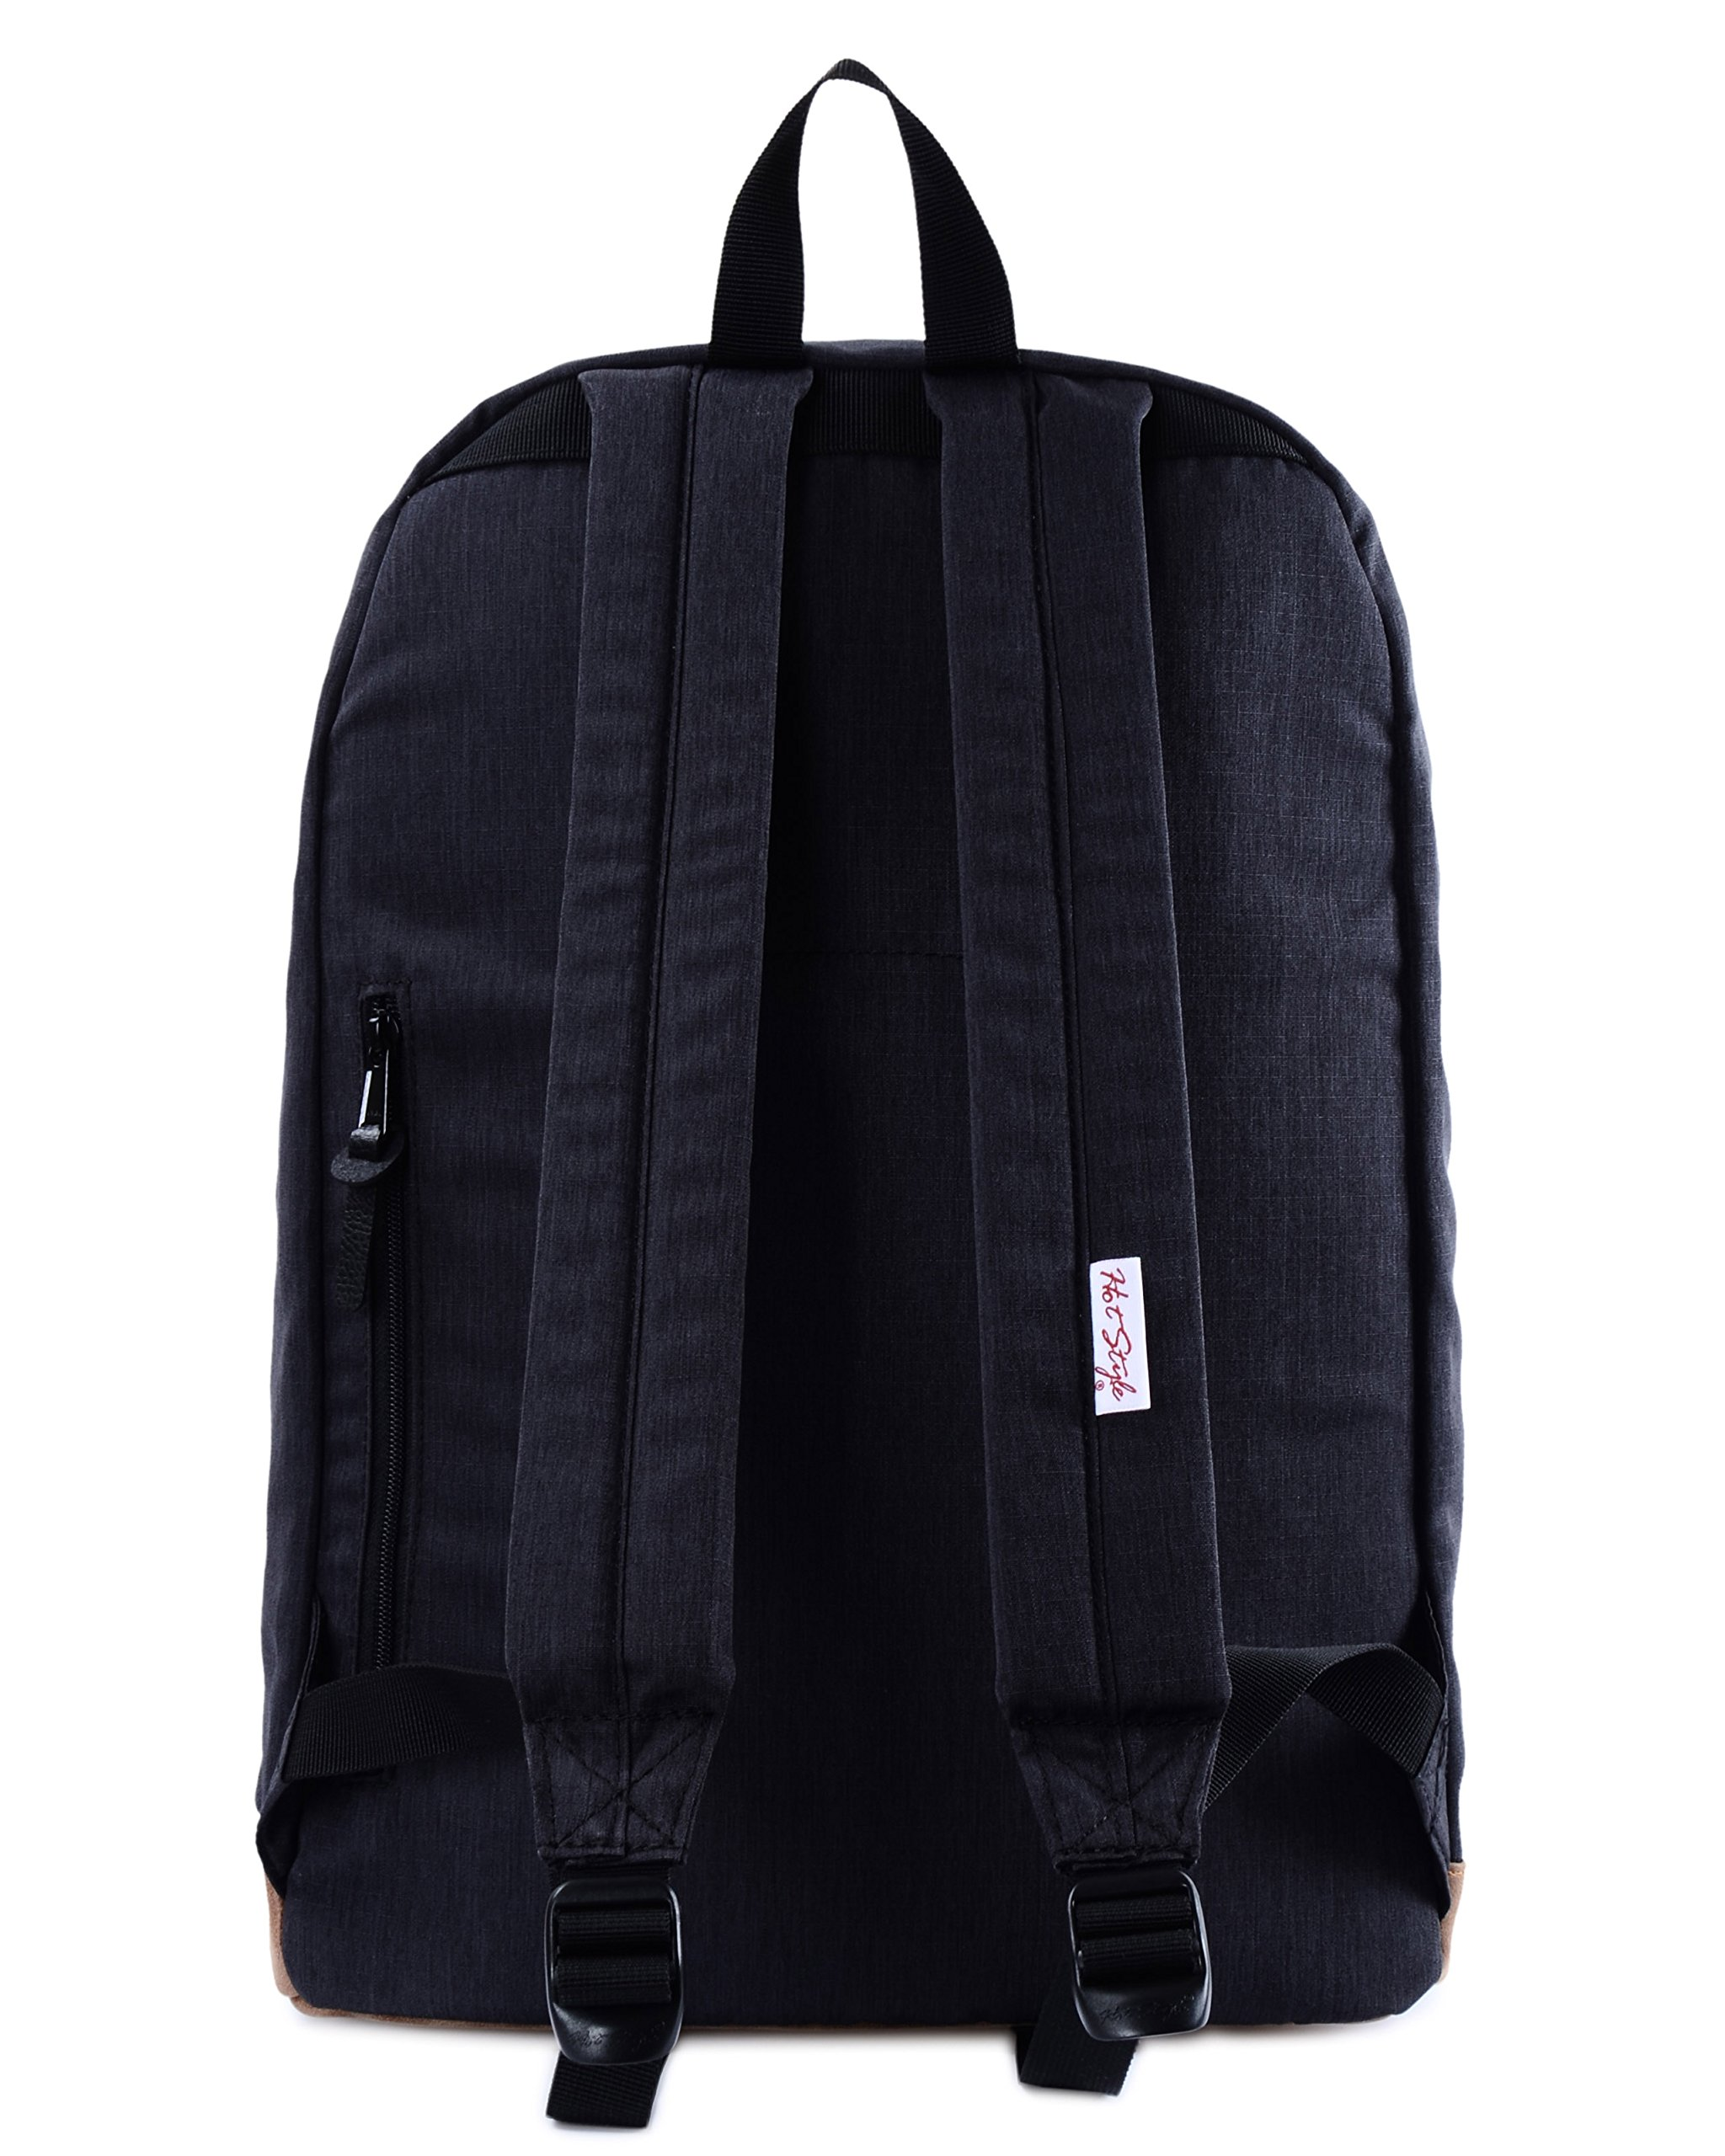 936Plus College School Backpack Travel Rucksack | Fits 15.6'' Laptop | 18''x12''x6'' | Black by hotstyle (Image #3)